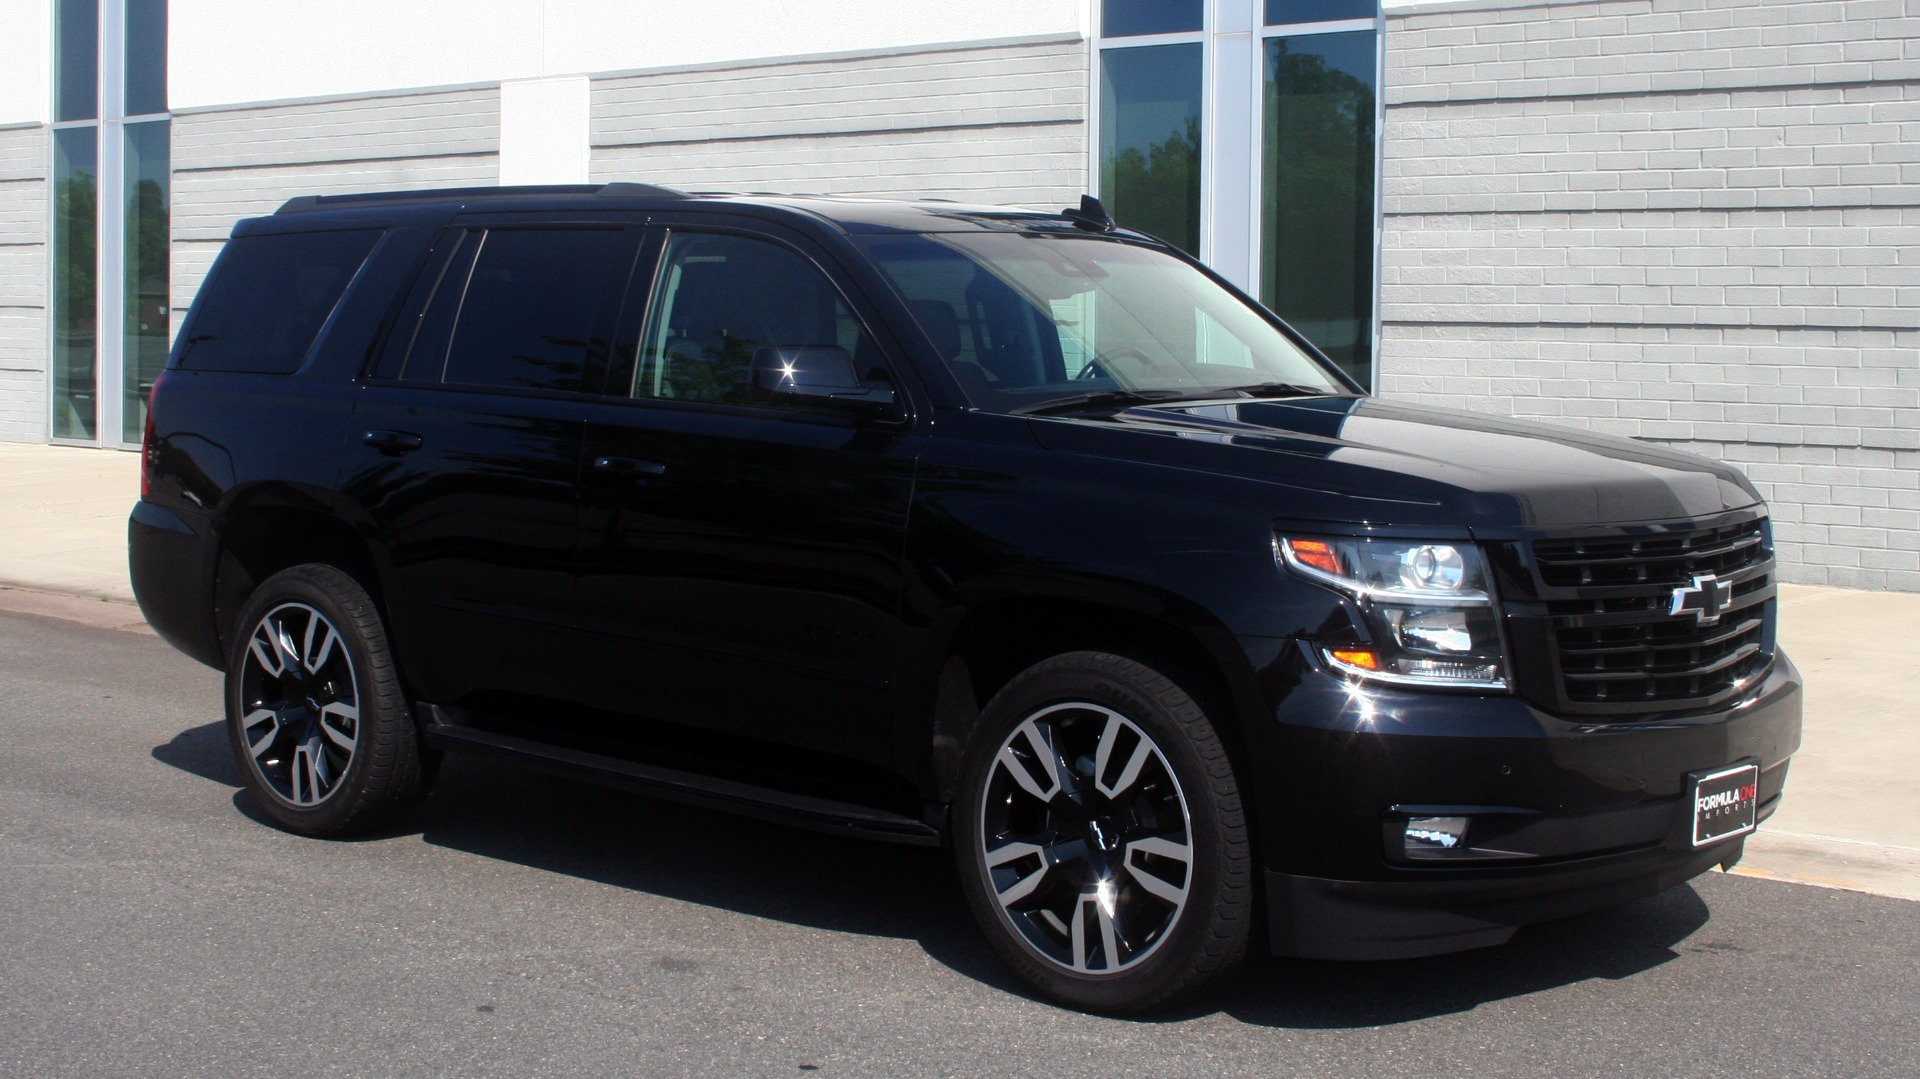 Used 2018 Chevrolet TAHOE PREMIER RST / 4X4 / NAV / BOSE / SUNROOF / 3-ROW / REARVIEW for sale $65,995 at Formula Imports in Charlotte NC 28227 7